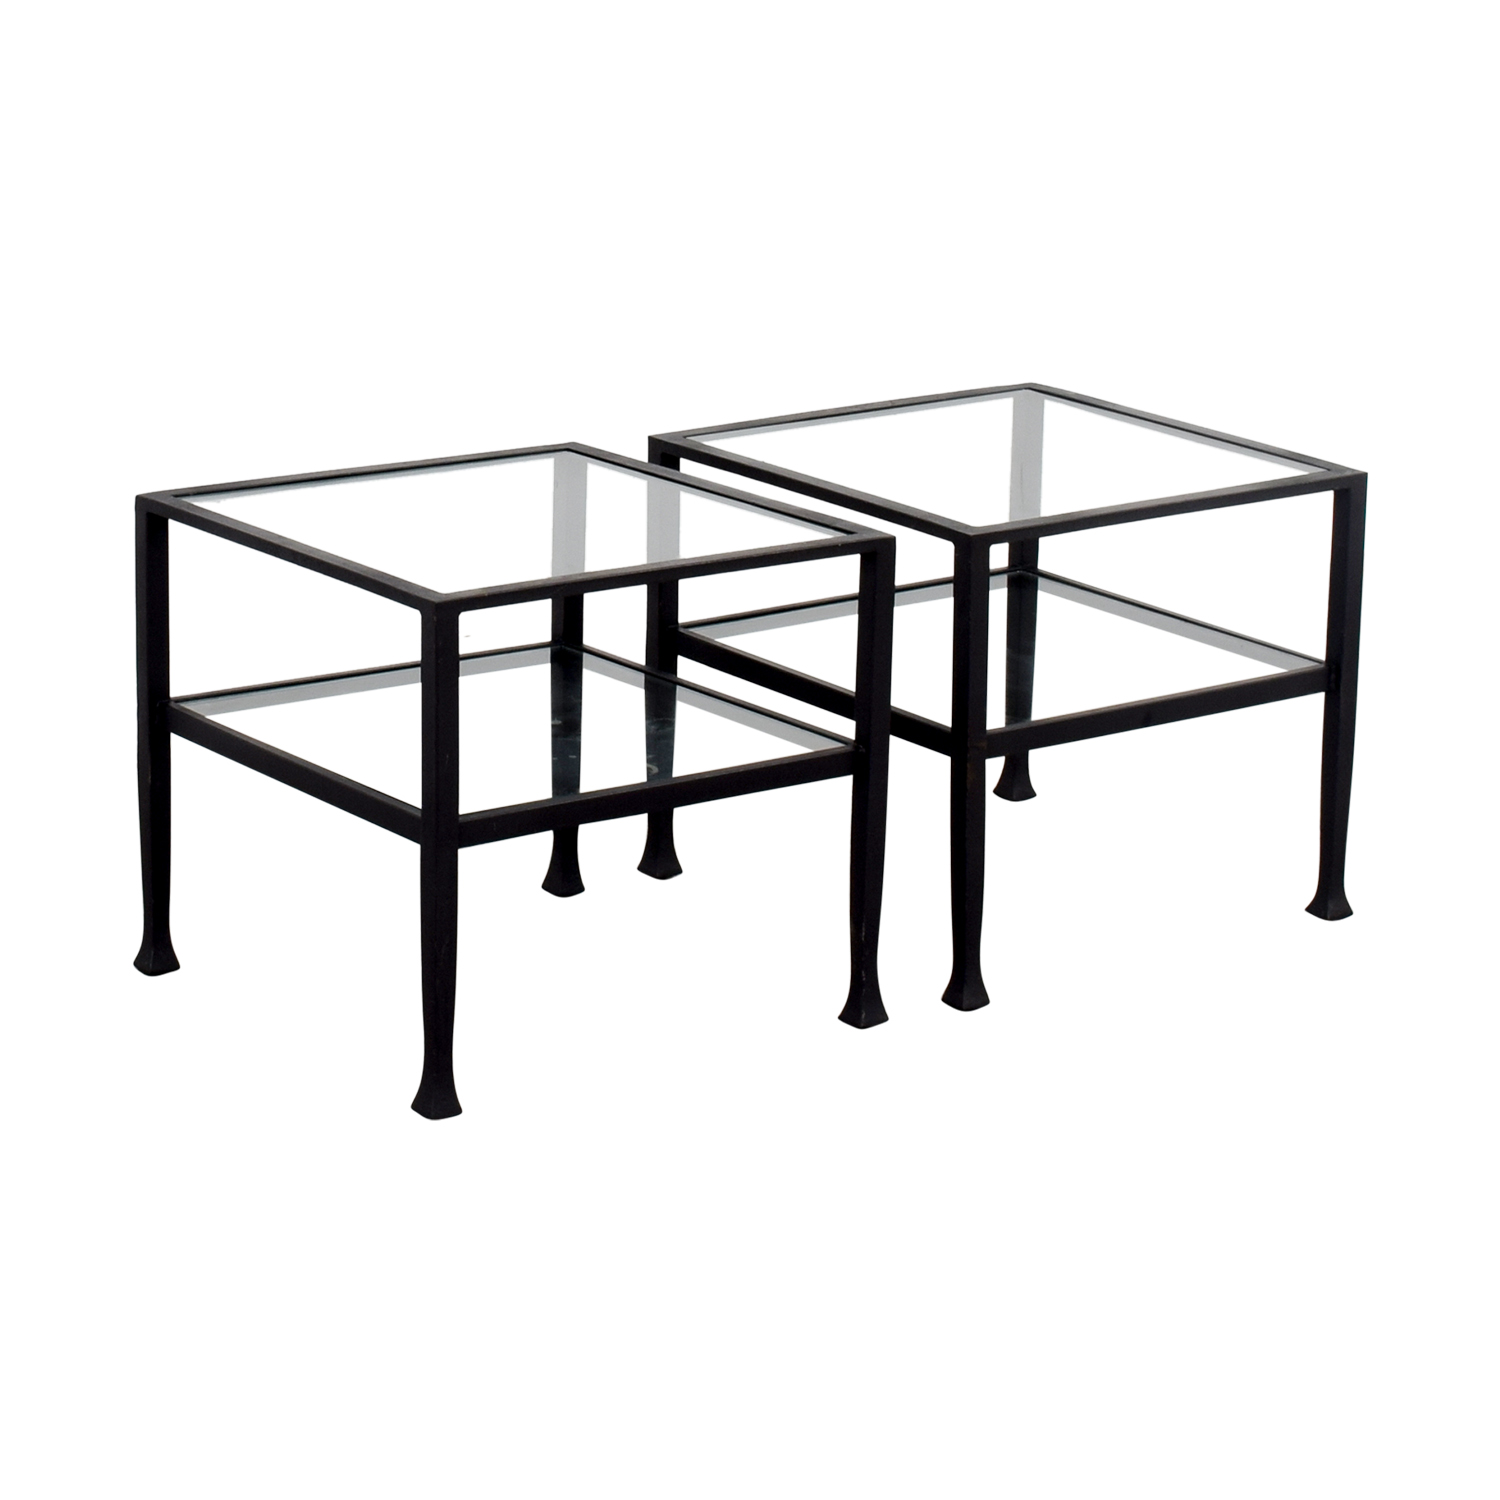 Pottery Barn Pottery Barn Glass and Black Frame Side Tables price